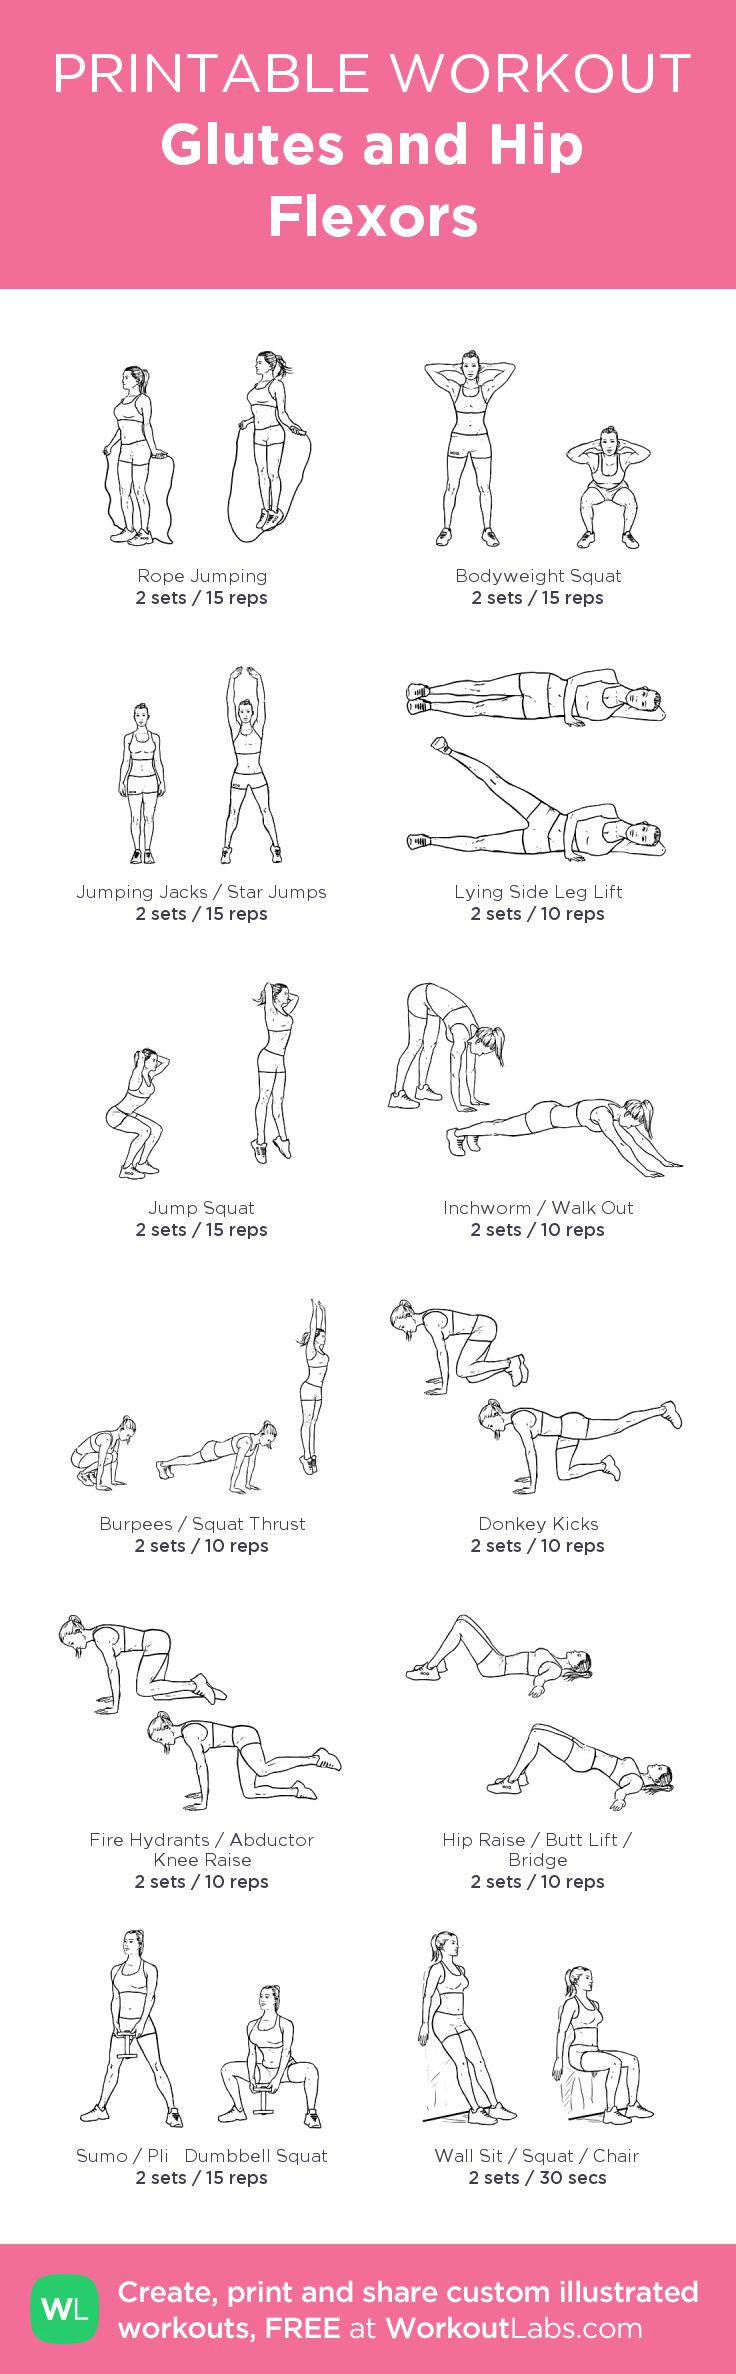 Glutes and Hip Flexors: my visual workout created at WorkoutLabs.com • Click through to customize and download as a FREE PDF! #customworkout